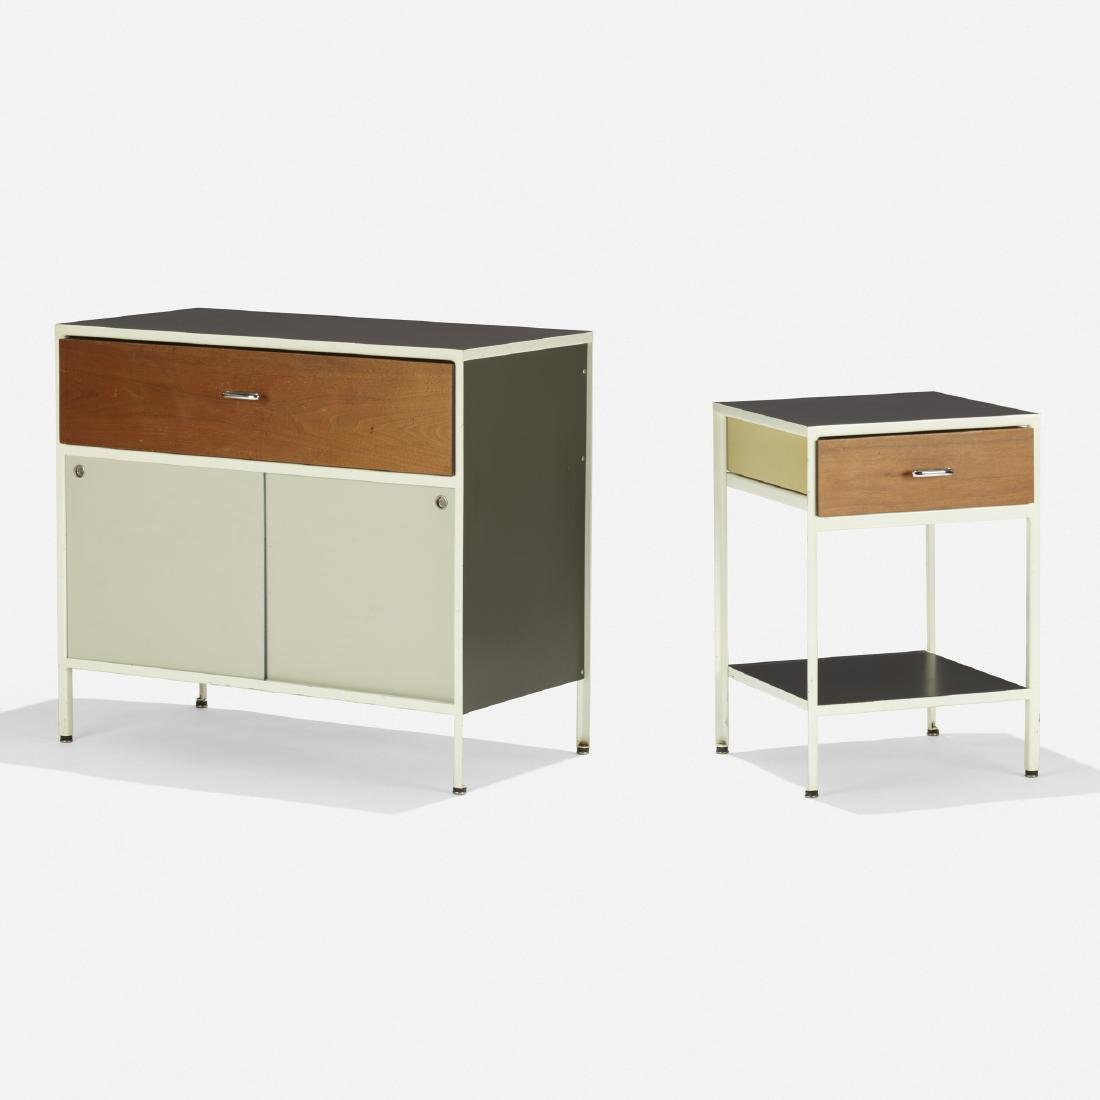 George Nelson & Assoc, Steelframe cabinet, nightstand